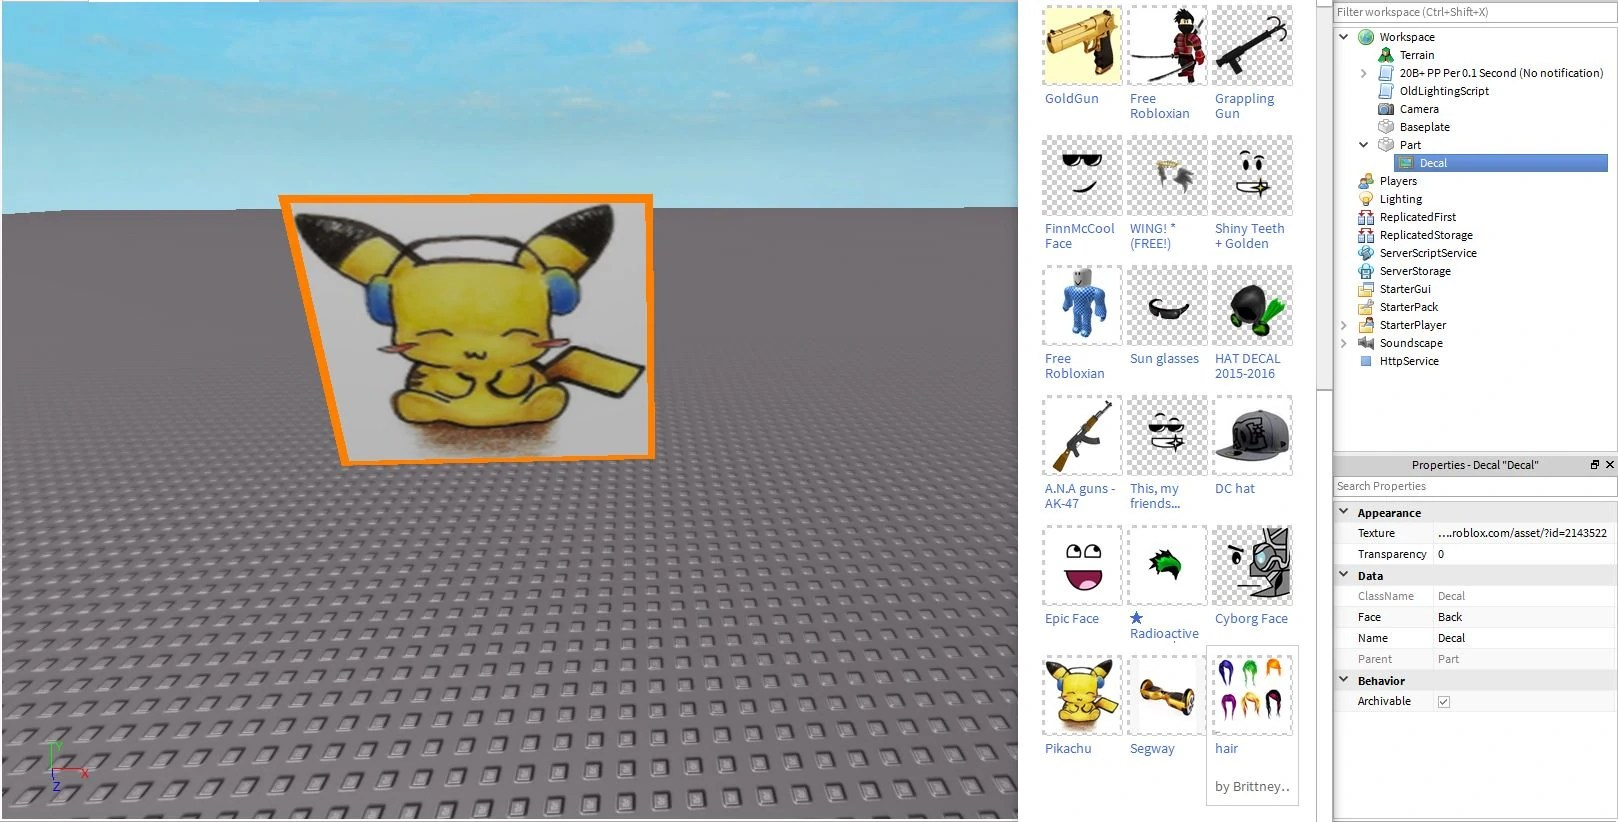 Roblox Picture Identification Decals